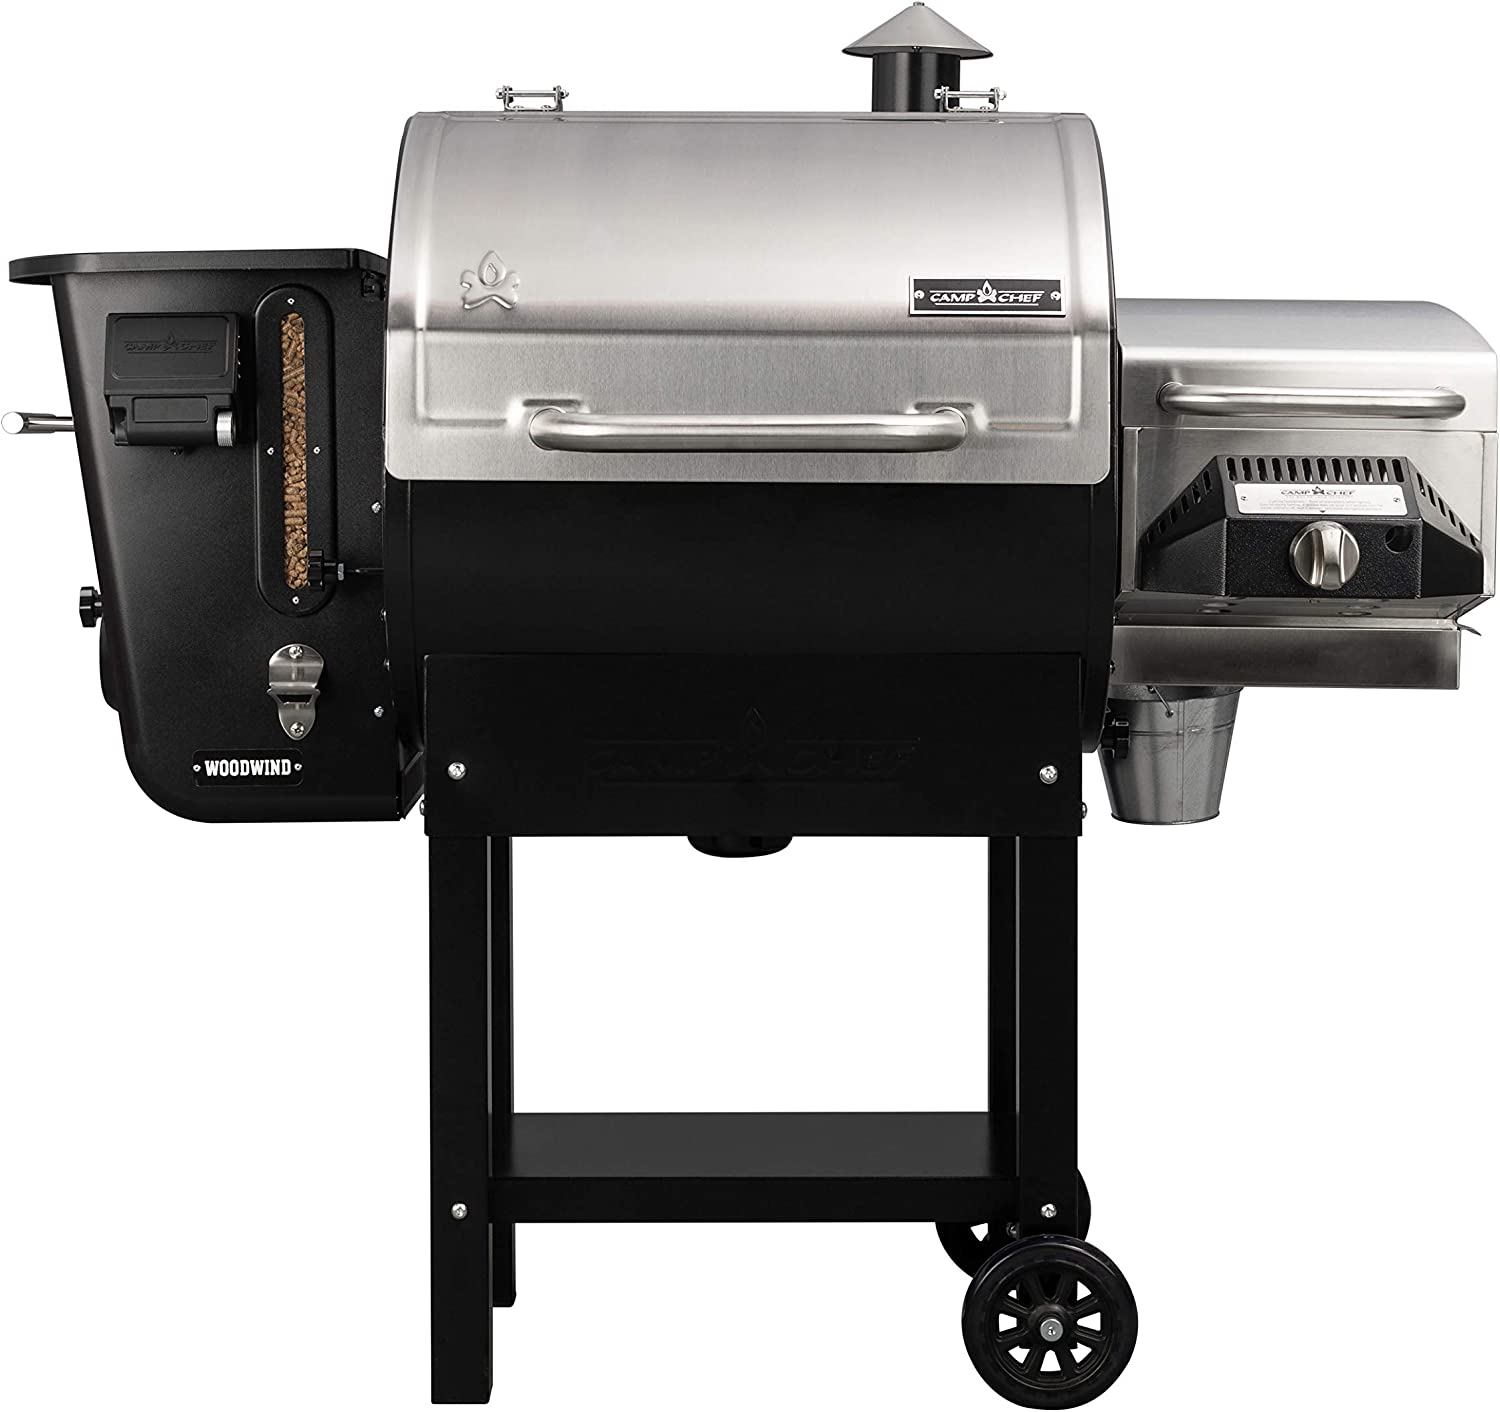 Camp-Chef's-Woodwind-24-PGSEAR-Pellet-Smoker